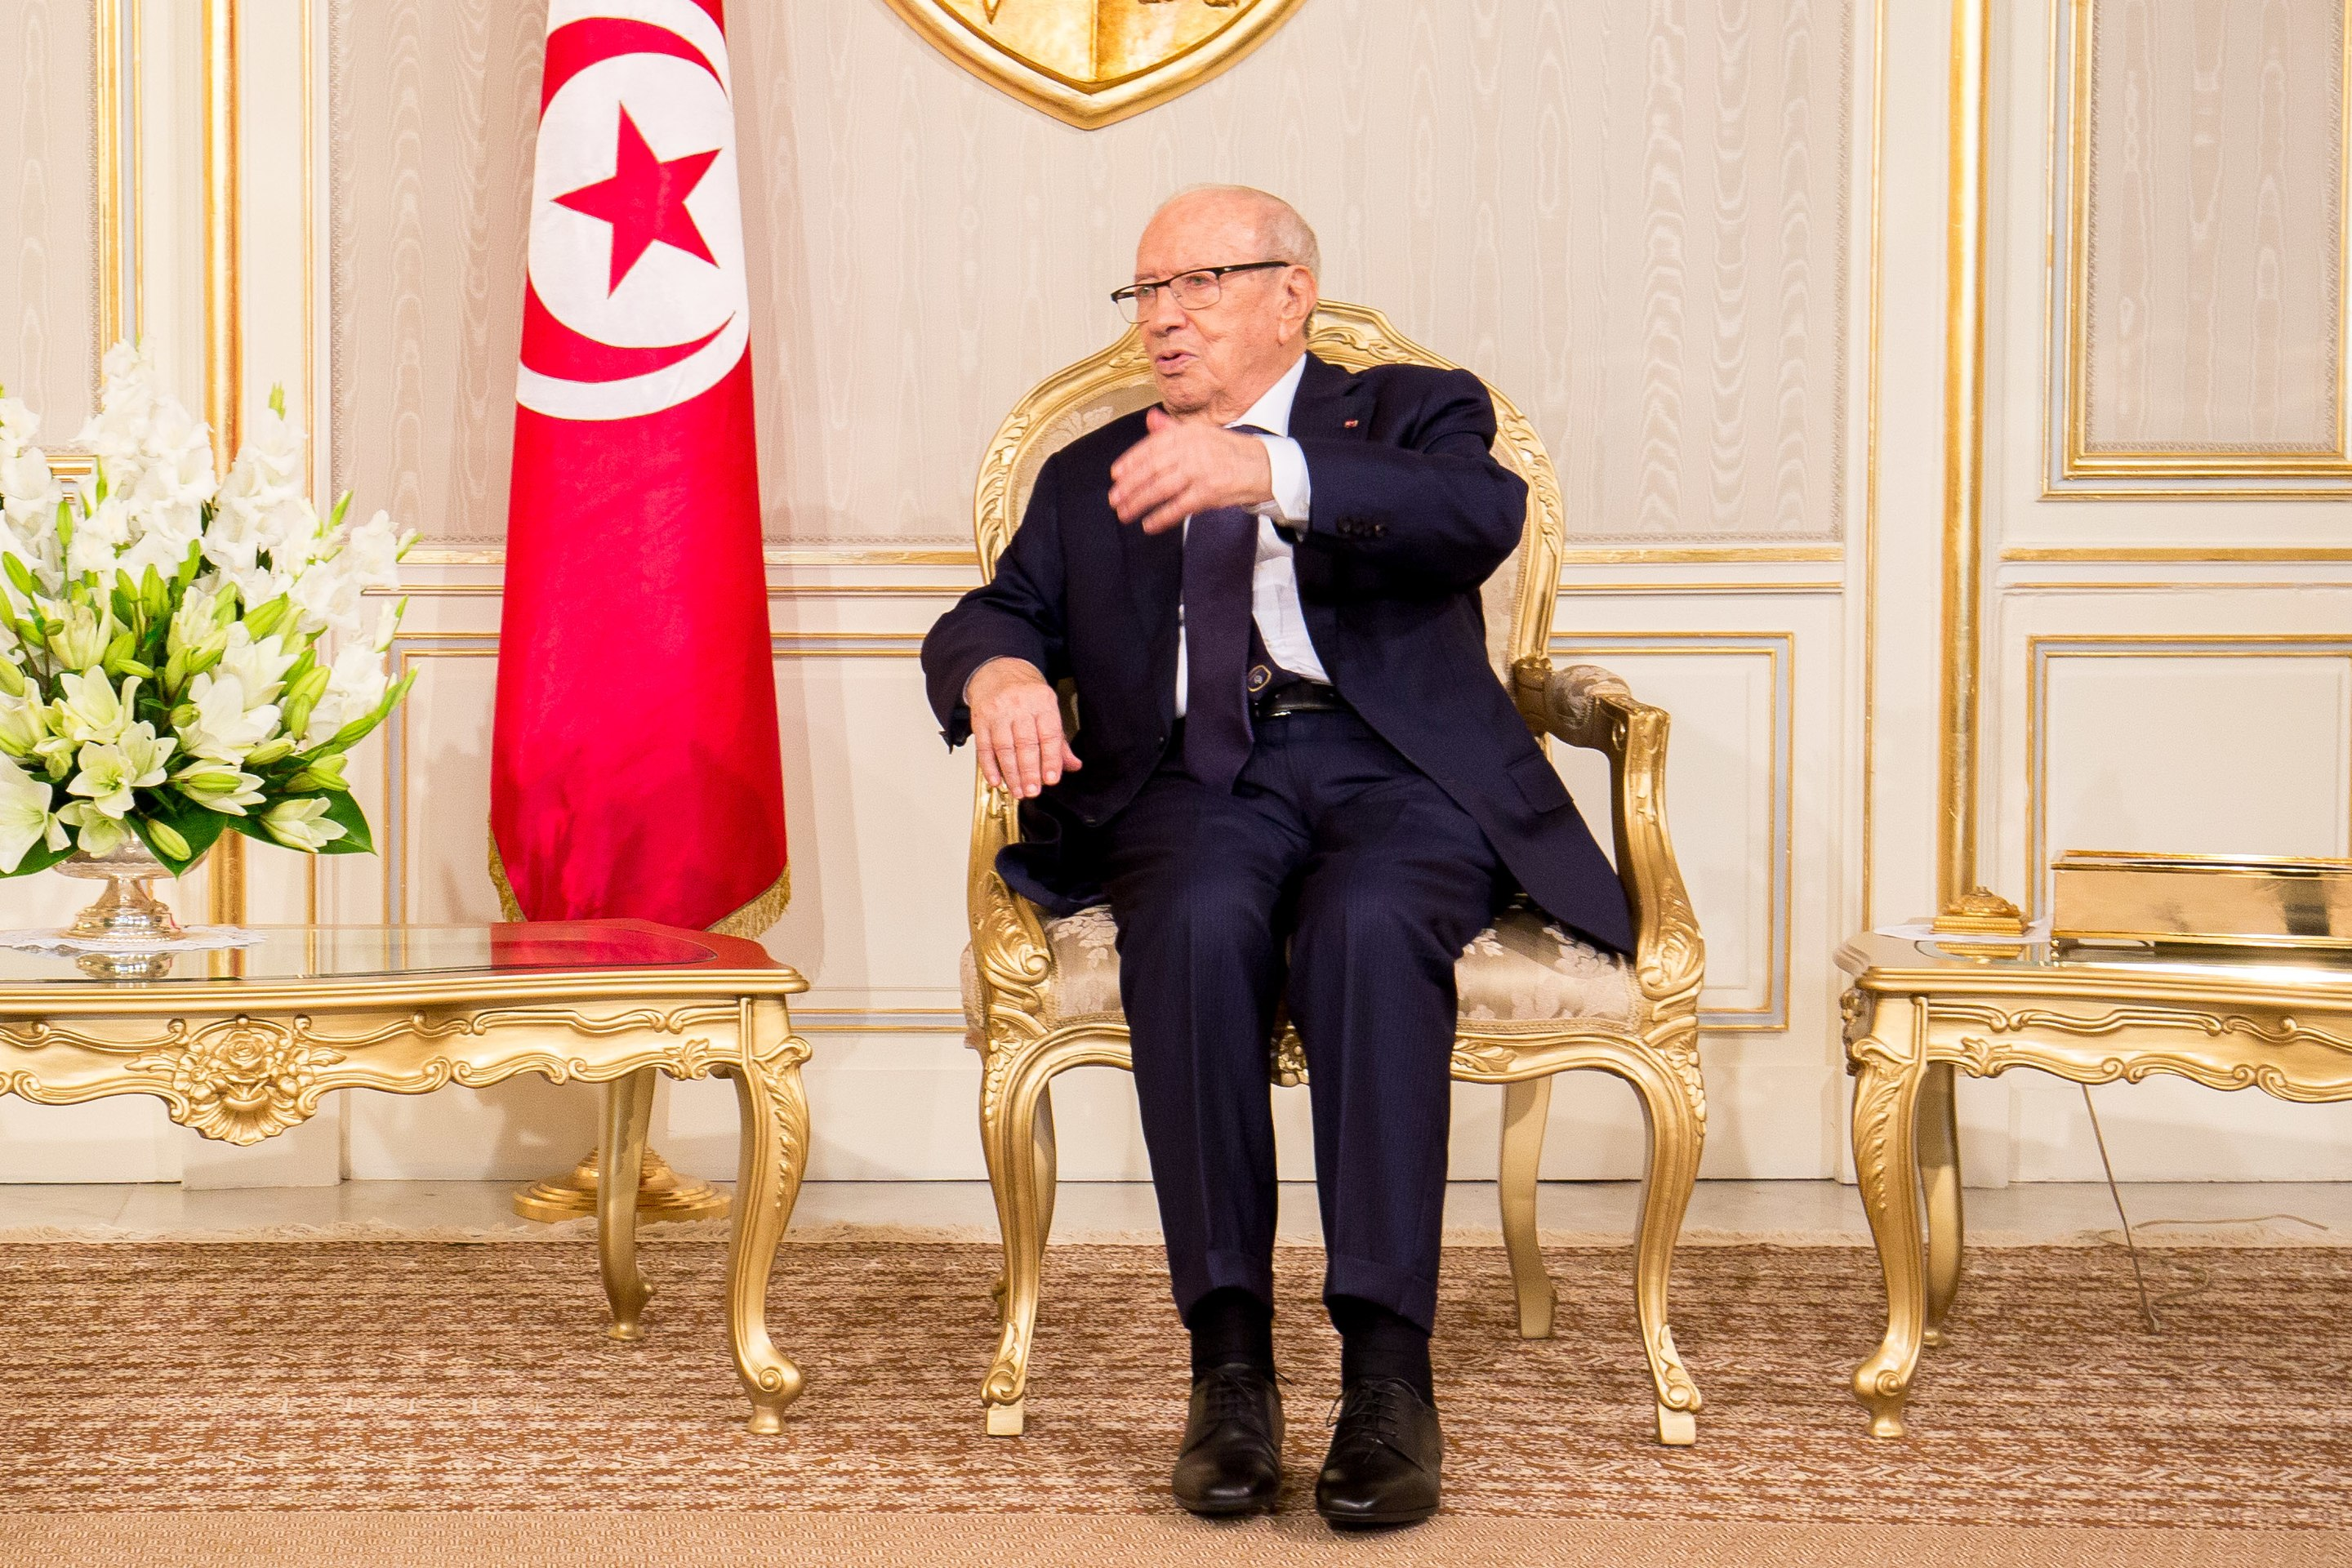 Tunisian President Beji Caid Essebsi (Wikimedia Commons/J. Marchand, ITU Pictures)